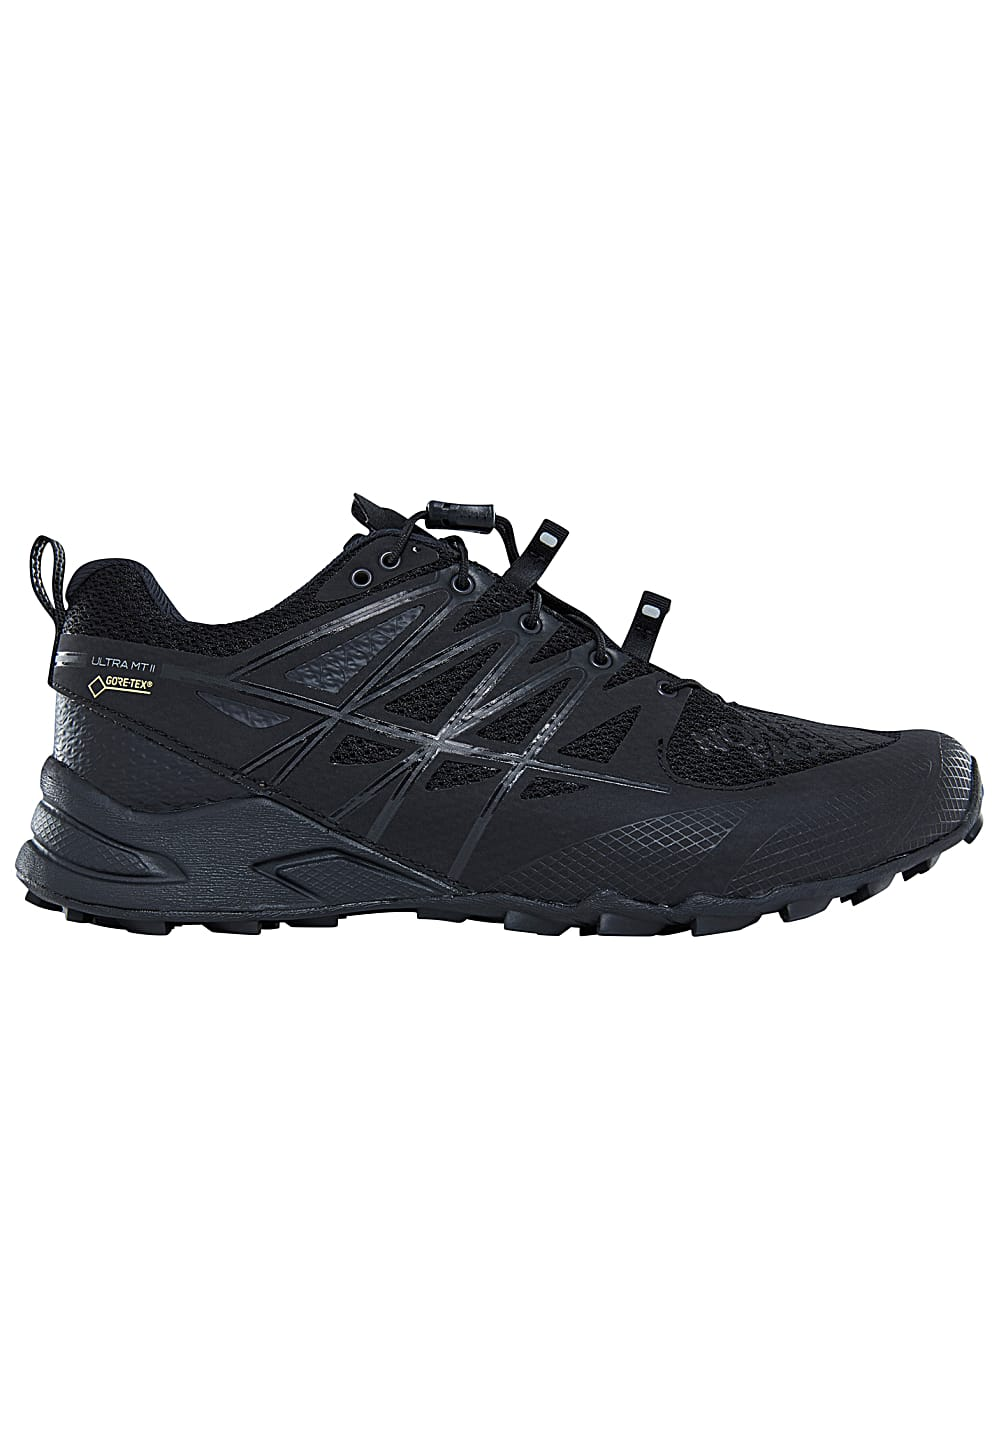 THE NORTH FACE Ultra Mt II GTX Scarpe da trekking per Donna Nero